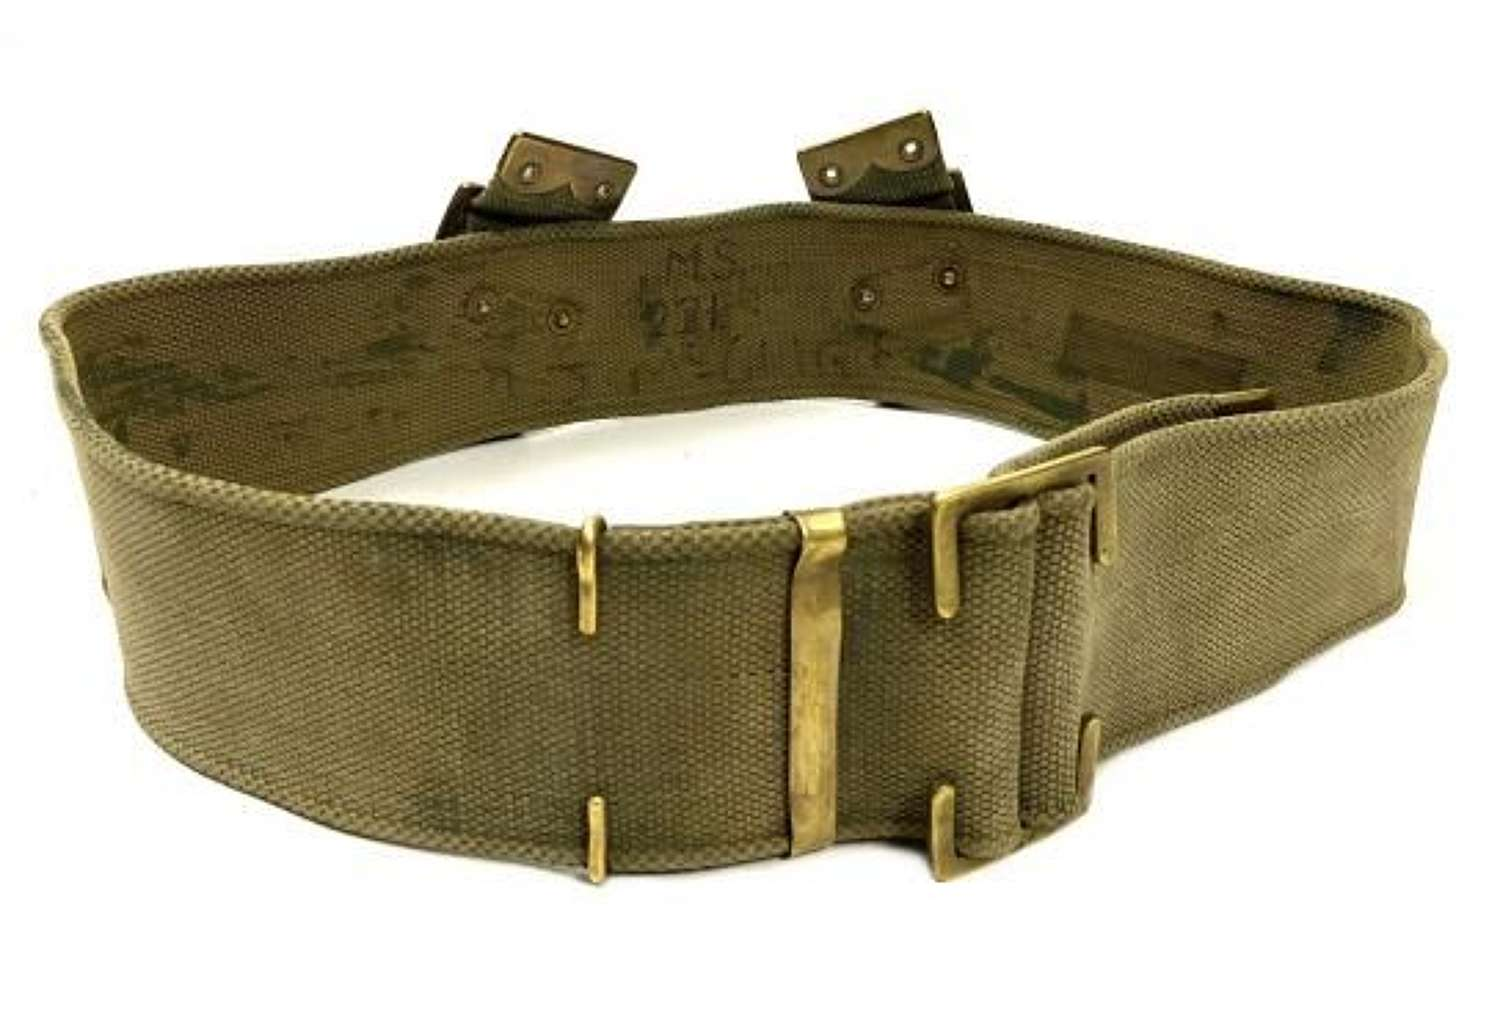 Original 1918 Dated 1908 Pattern Webbing Belt - Size M